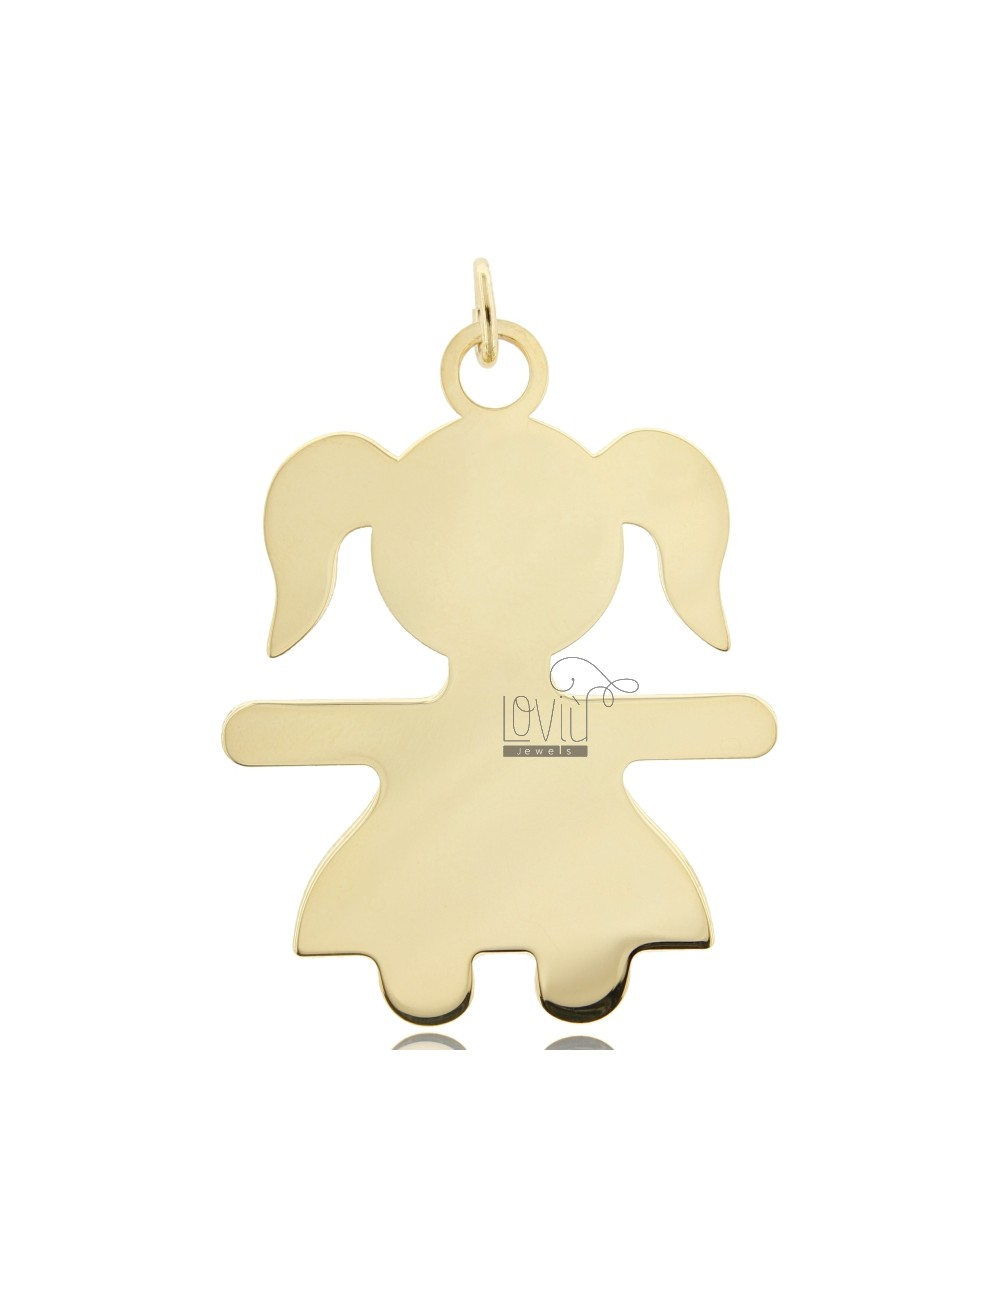 A GIRL PENDANT SLAB MIS 6,0 X4, 5 SILVER GOLD PLATED 925